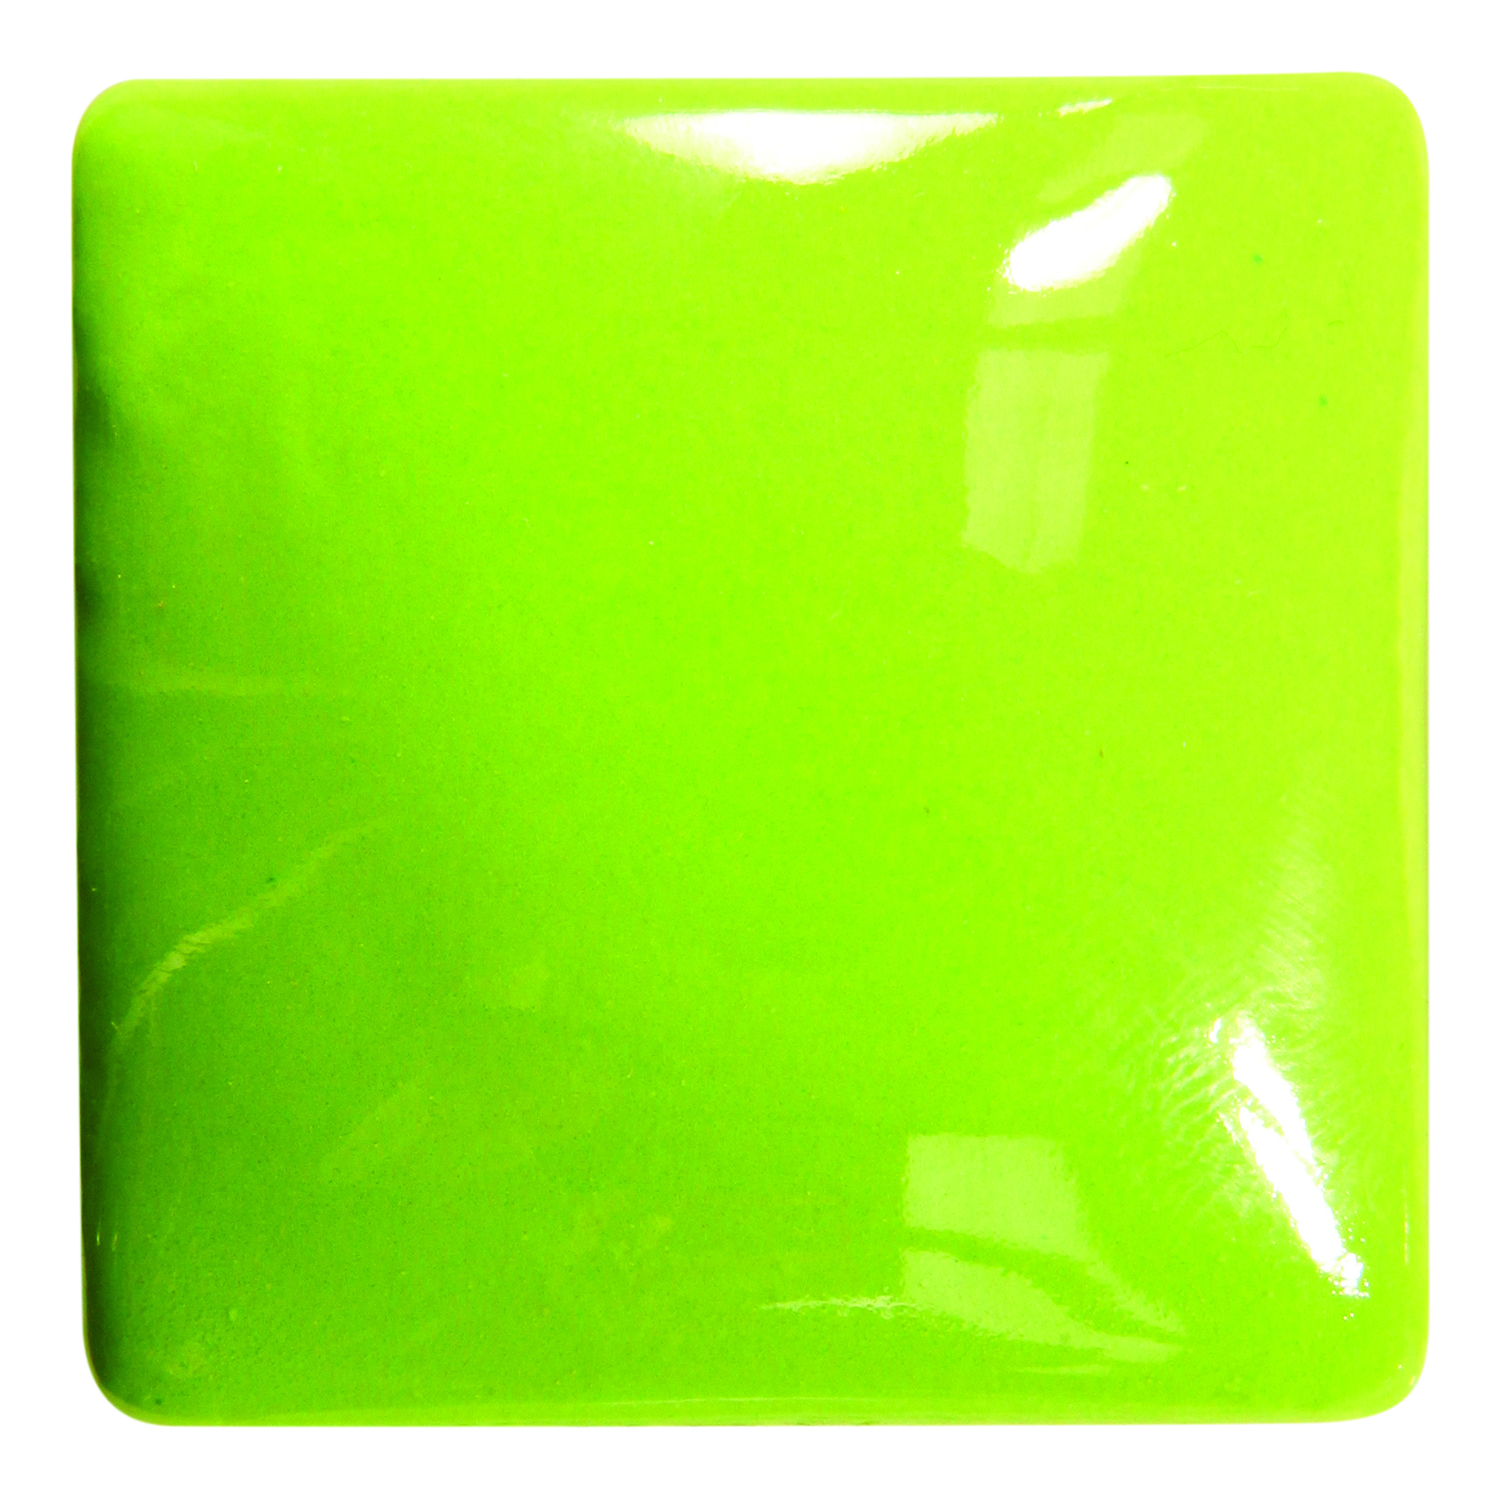 Spectrum 525 Lime Green Underglaze 1